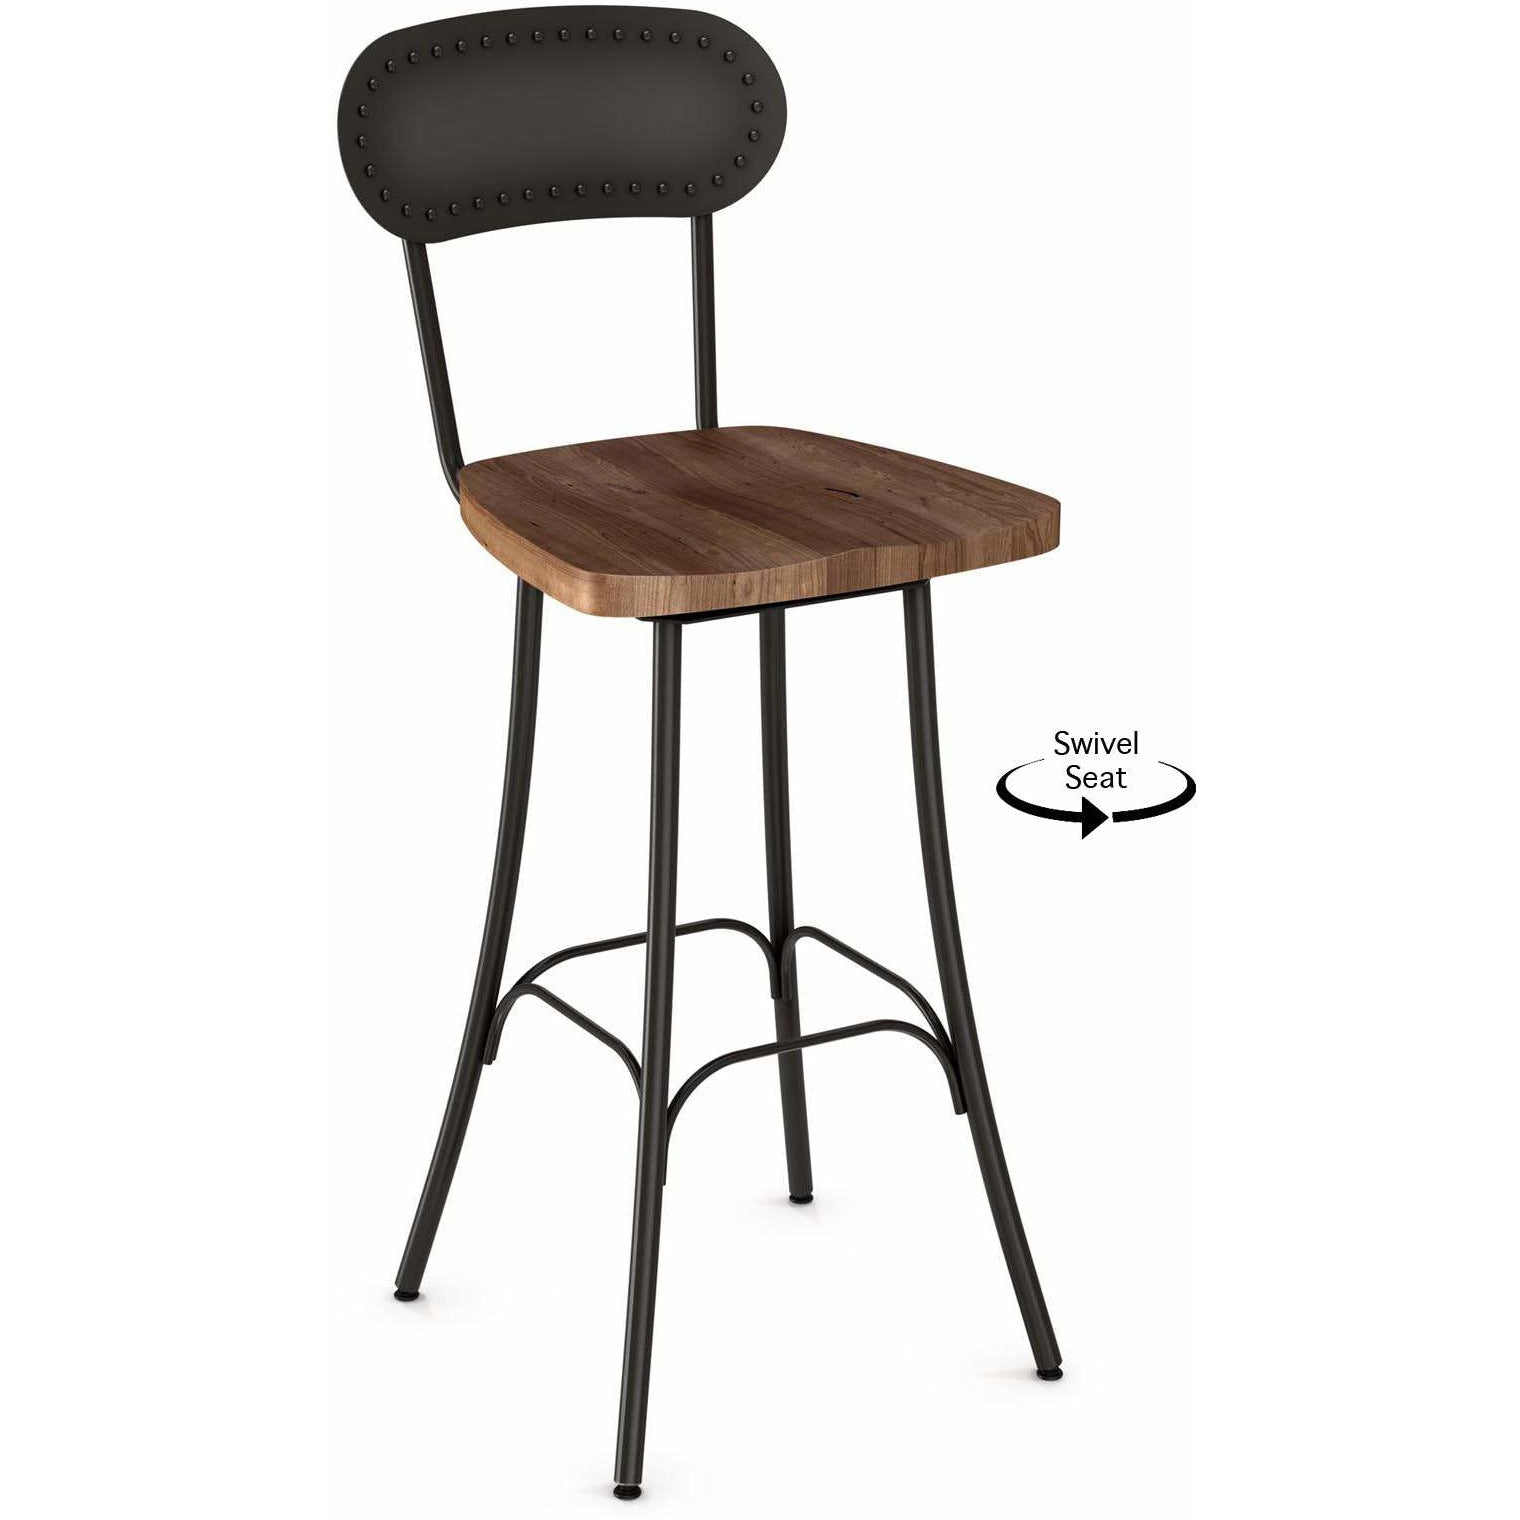 Bean Swivel Barstool